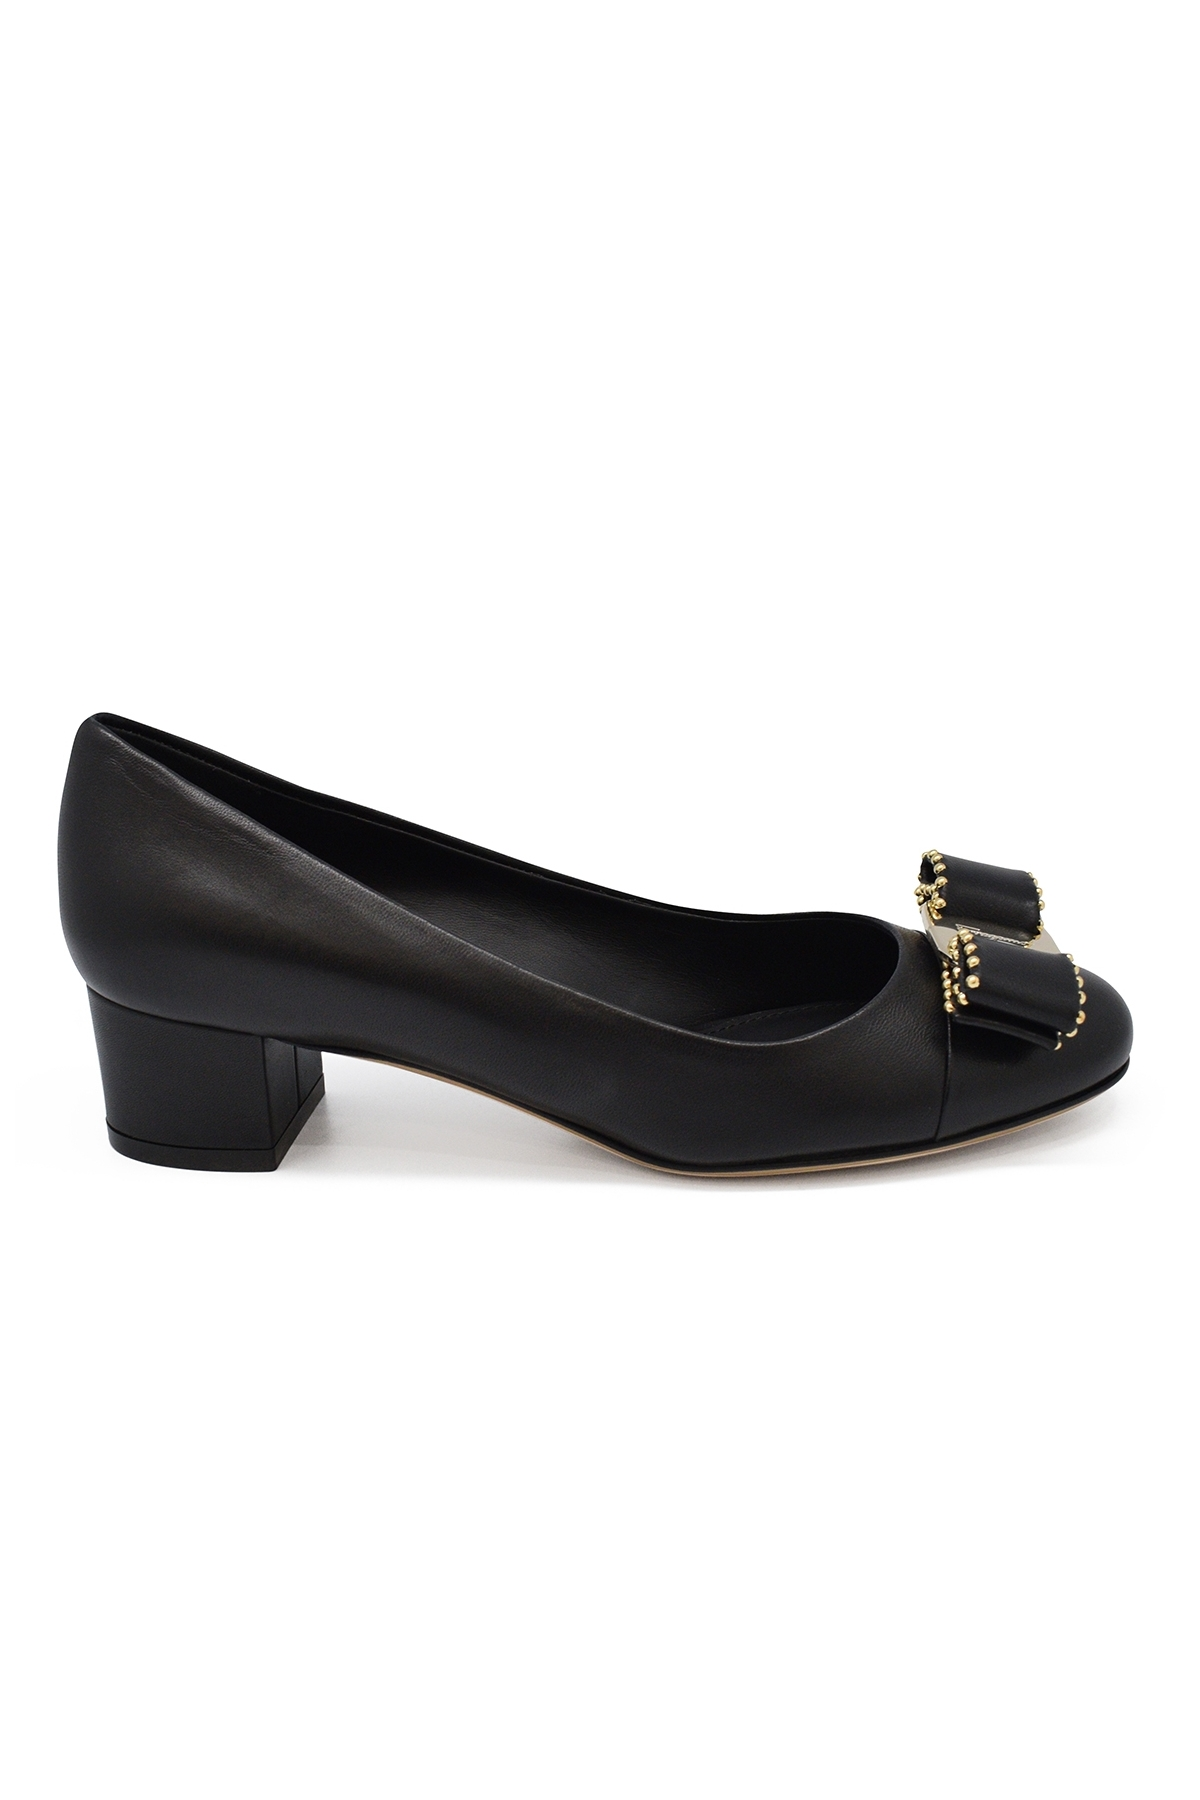 Vara pumps